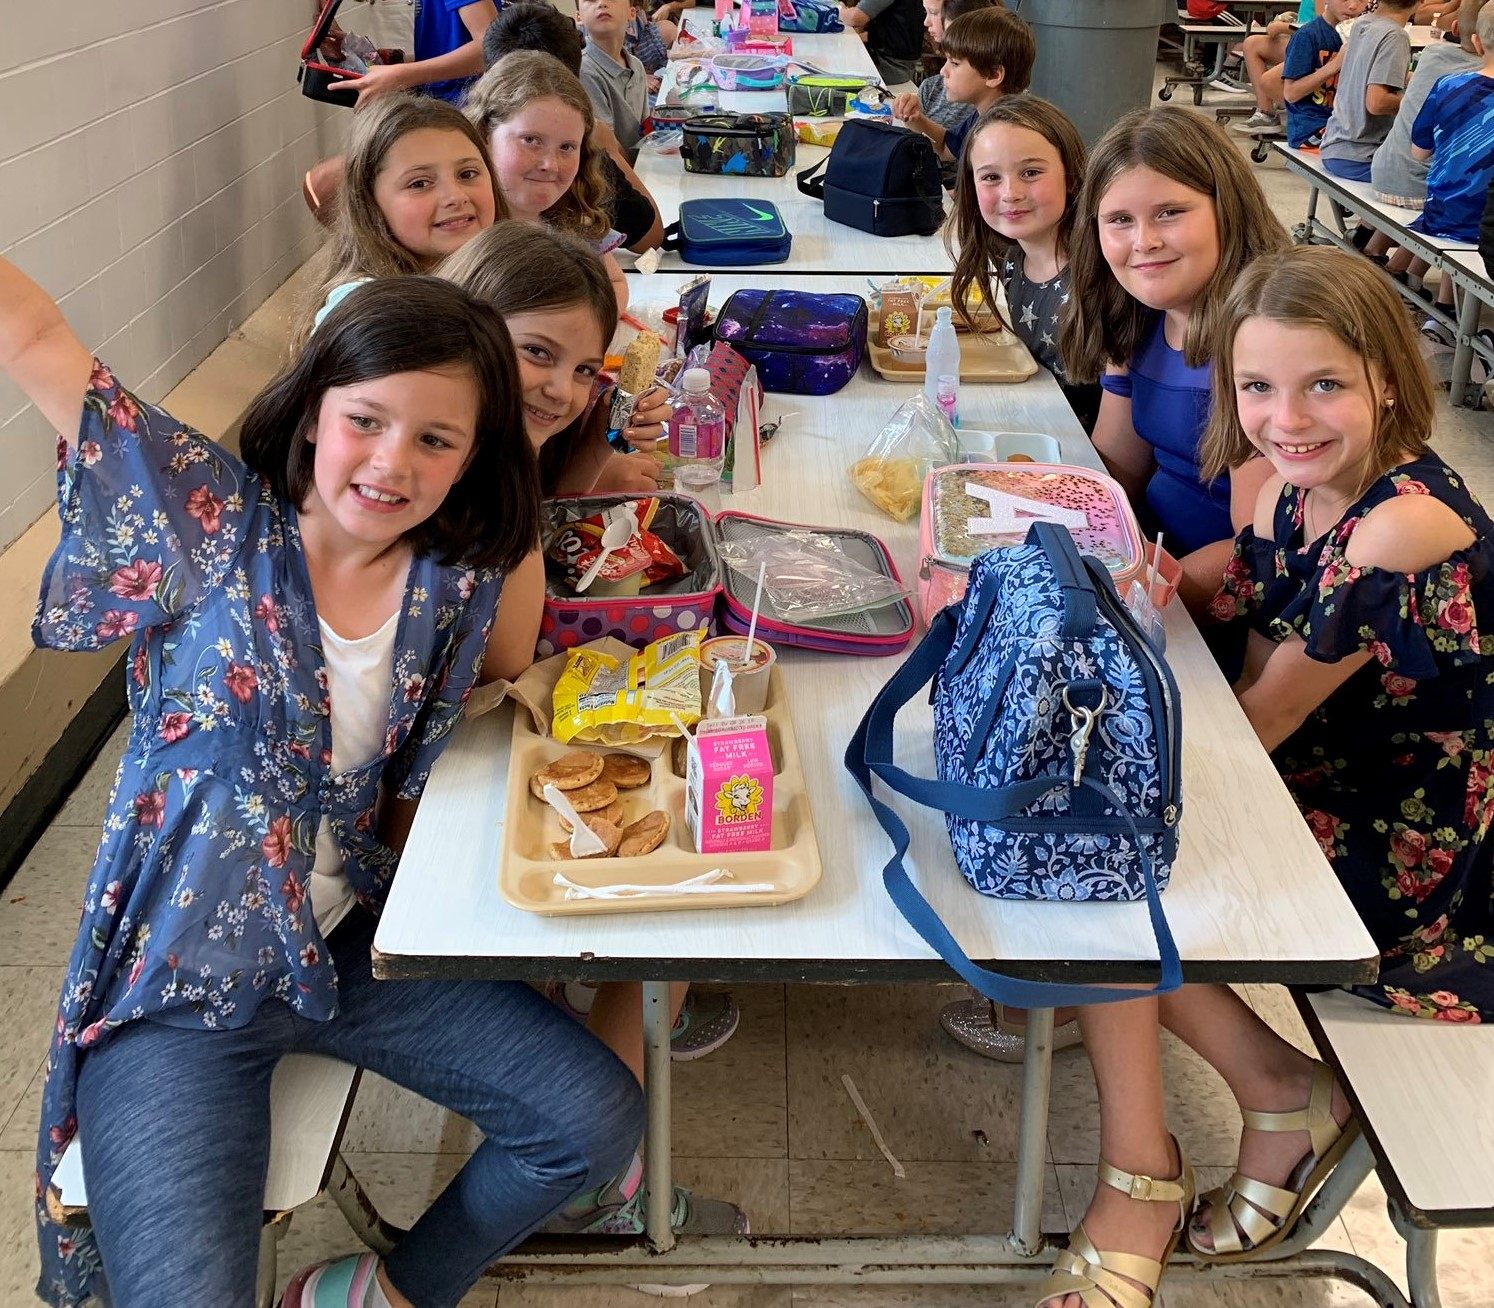 Park Elementary Students at the Lunch Table and smiling - Fall 2019